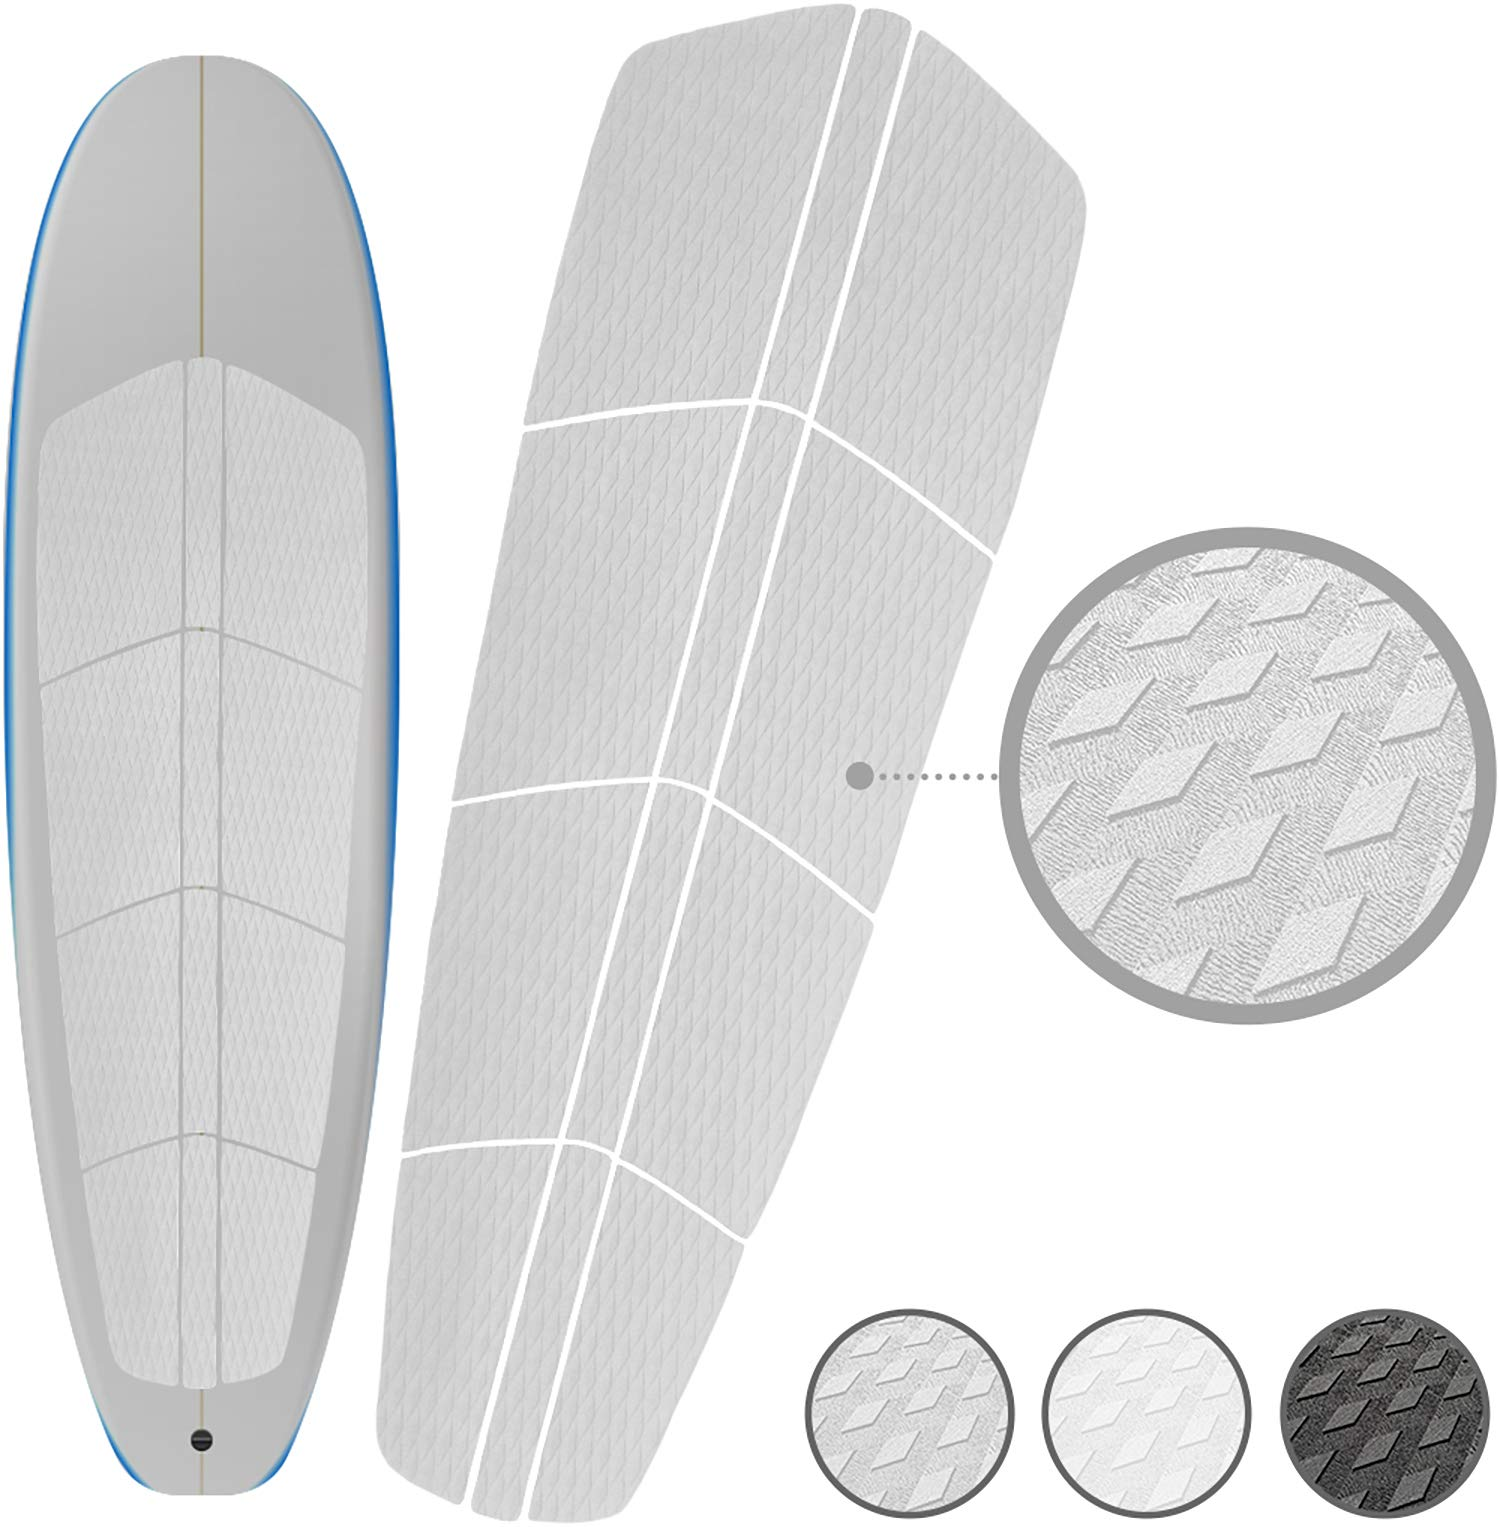 Punt Surf Paddle Board SUP Traction Pad with 3M Adhesive - 12 Piece Customizable Deck Grip for Any Size Paddleboard